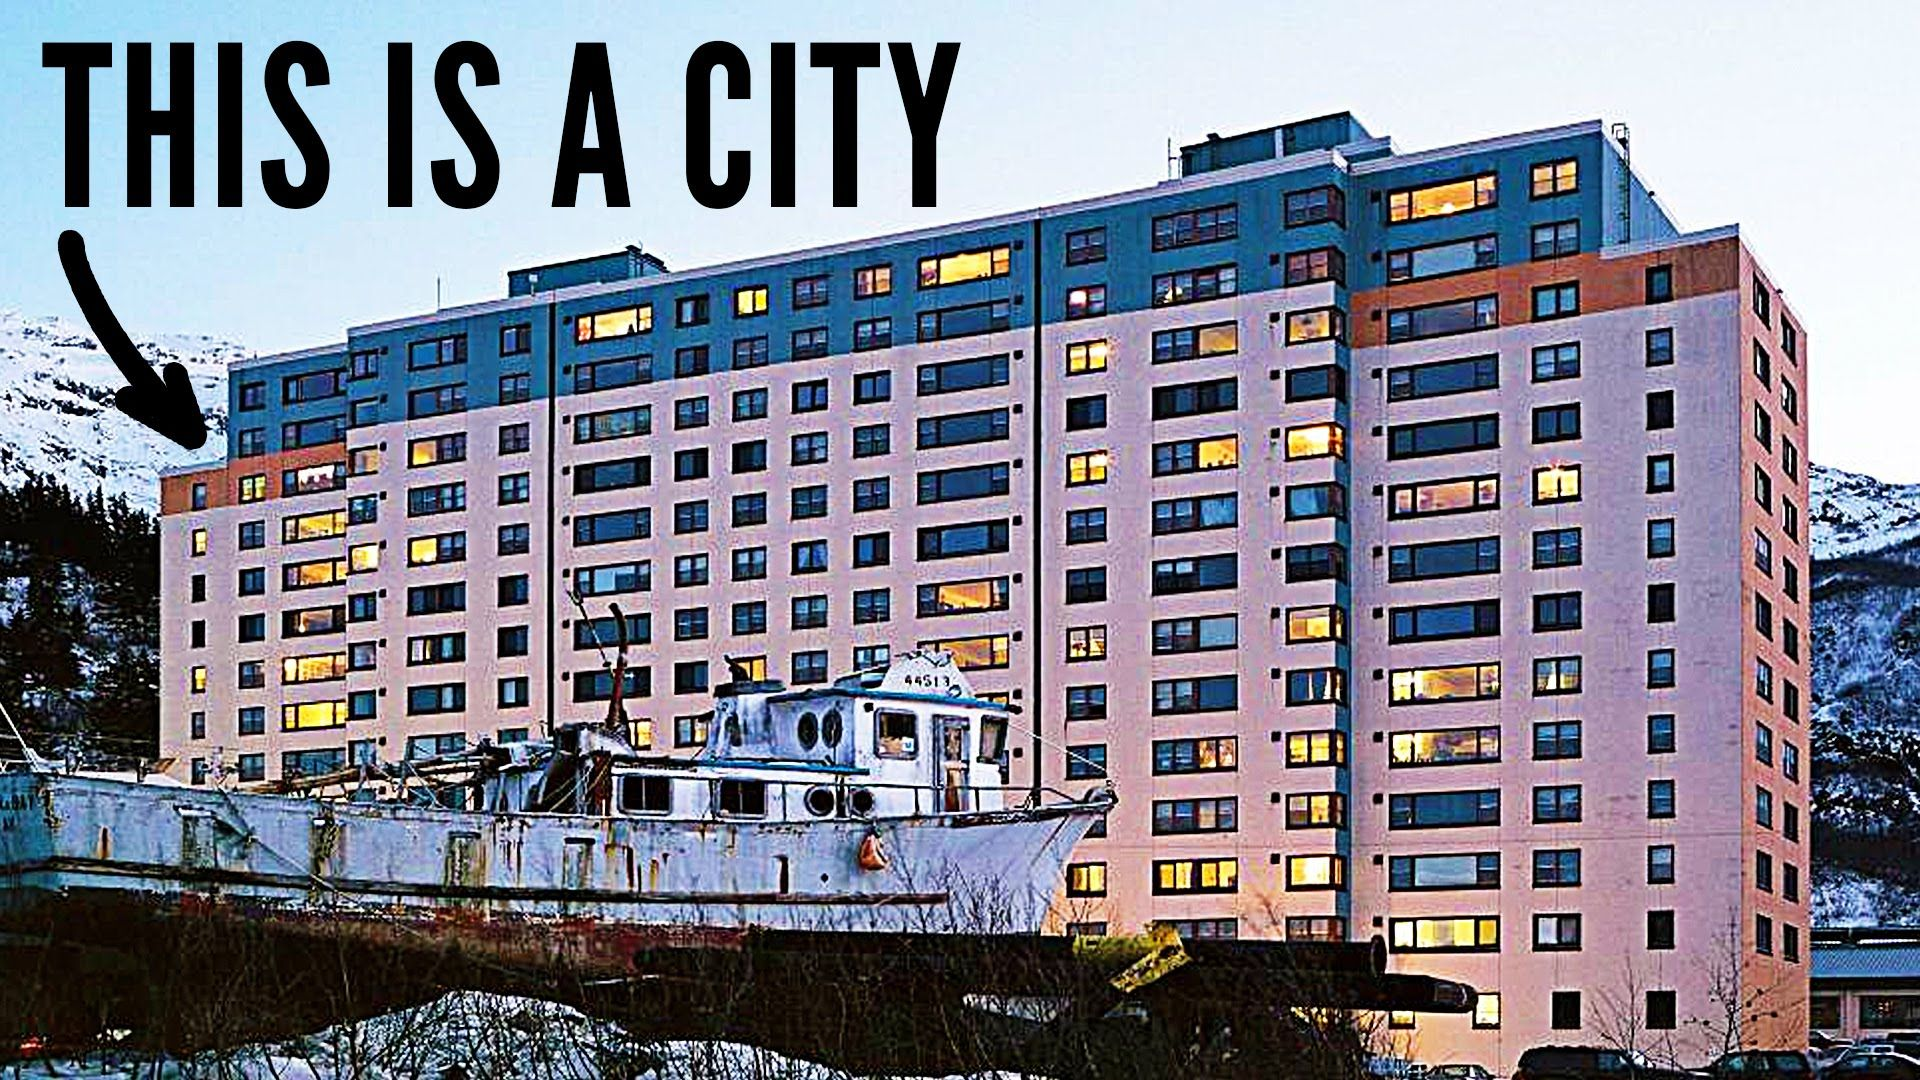 Every Person In This City Lives In One Building With Images City Weird Town Places In America